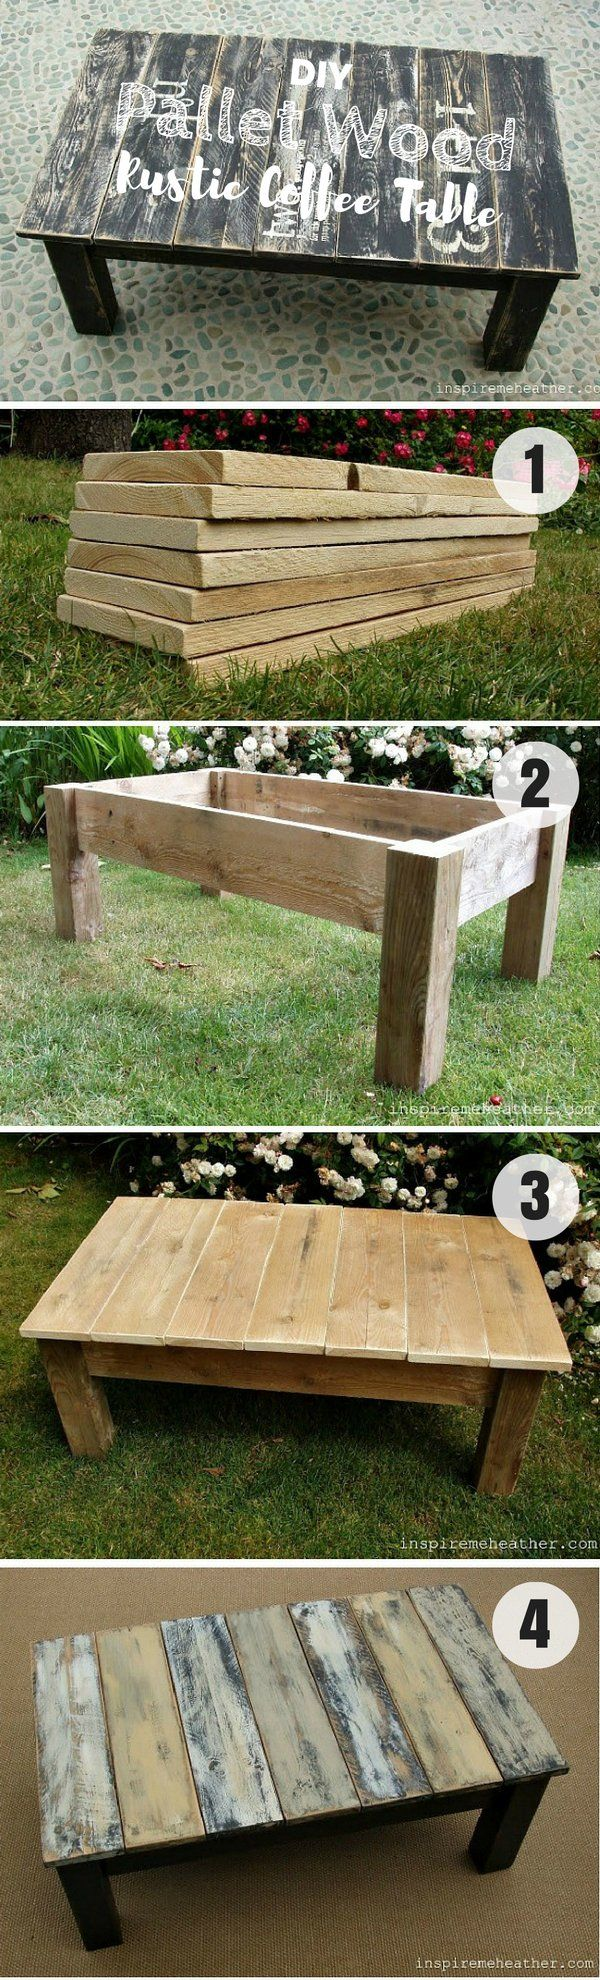 Best 25+ Diy Coffee Table Ideas On Pinterest | Coffee Table Plans, Diy Table  And DIY Furniture Part 34